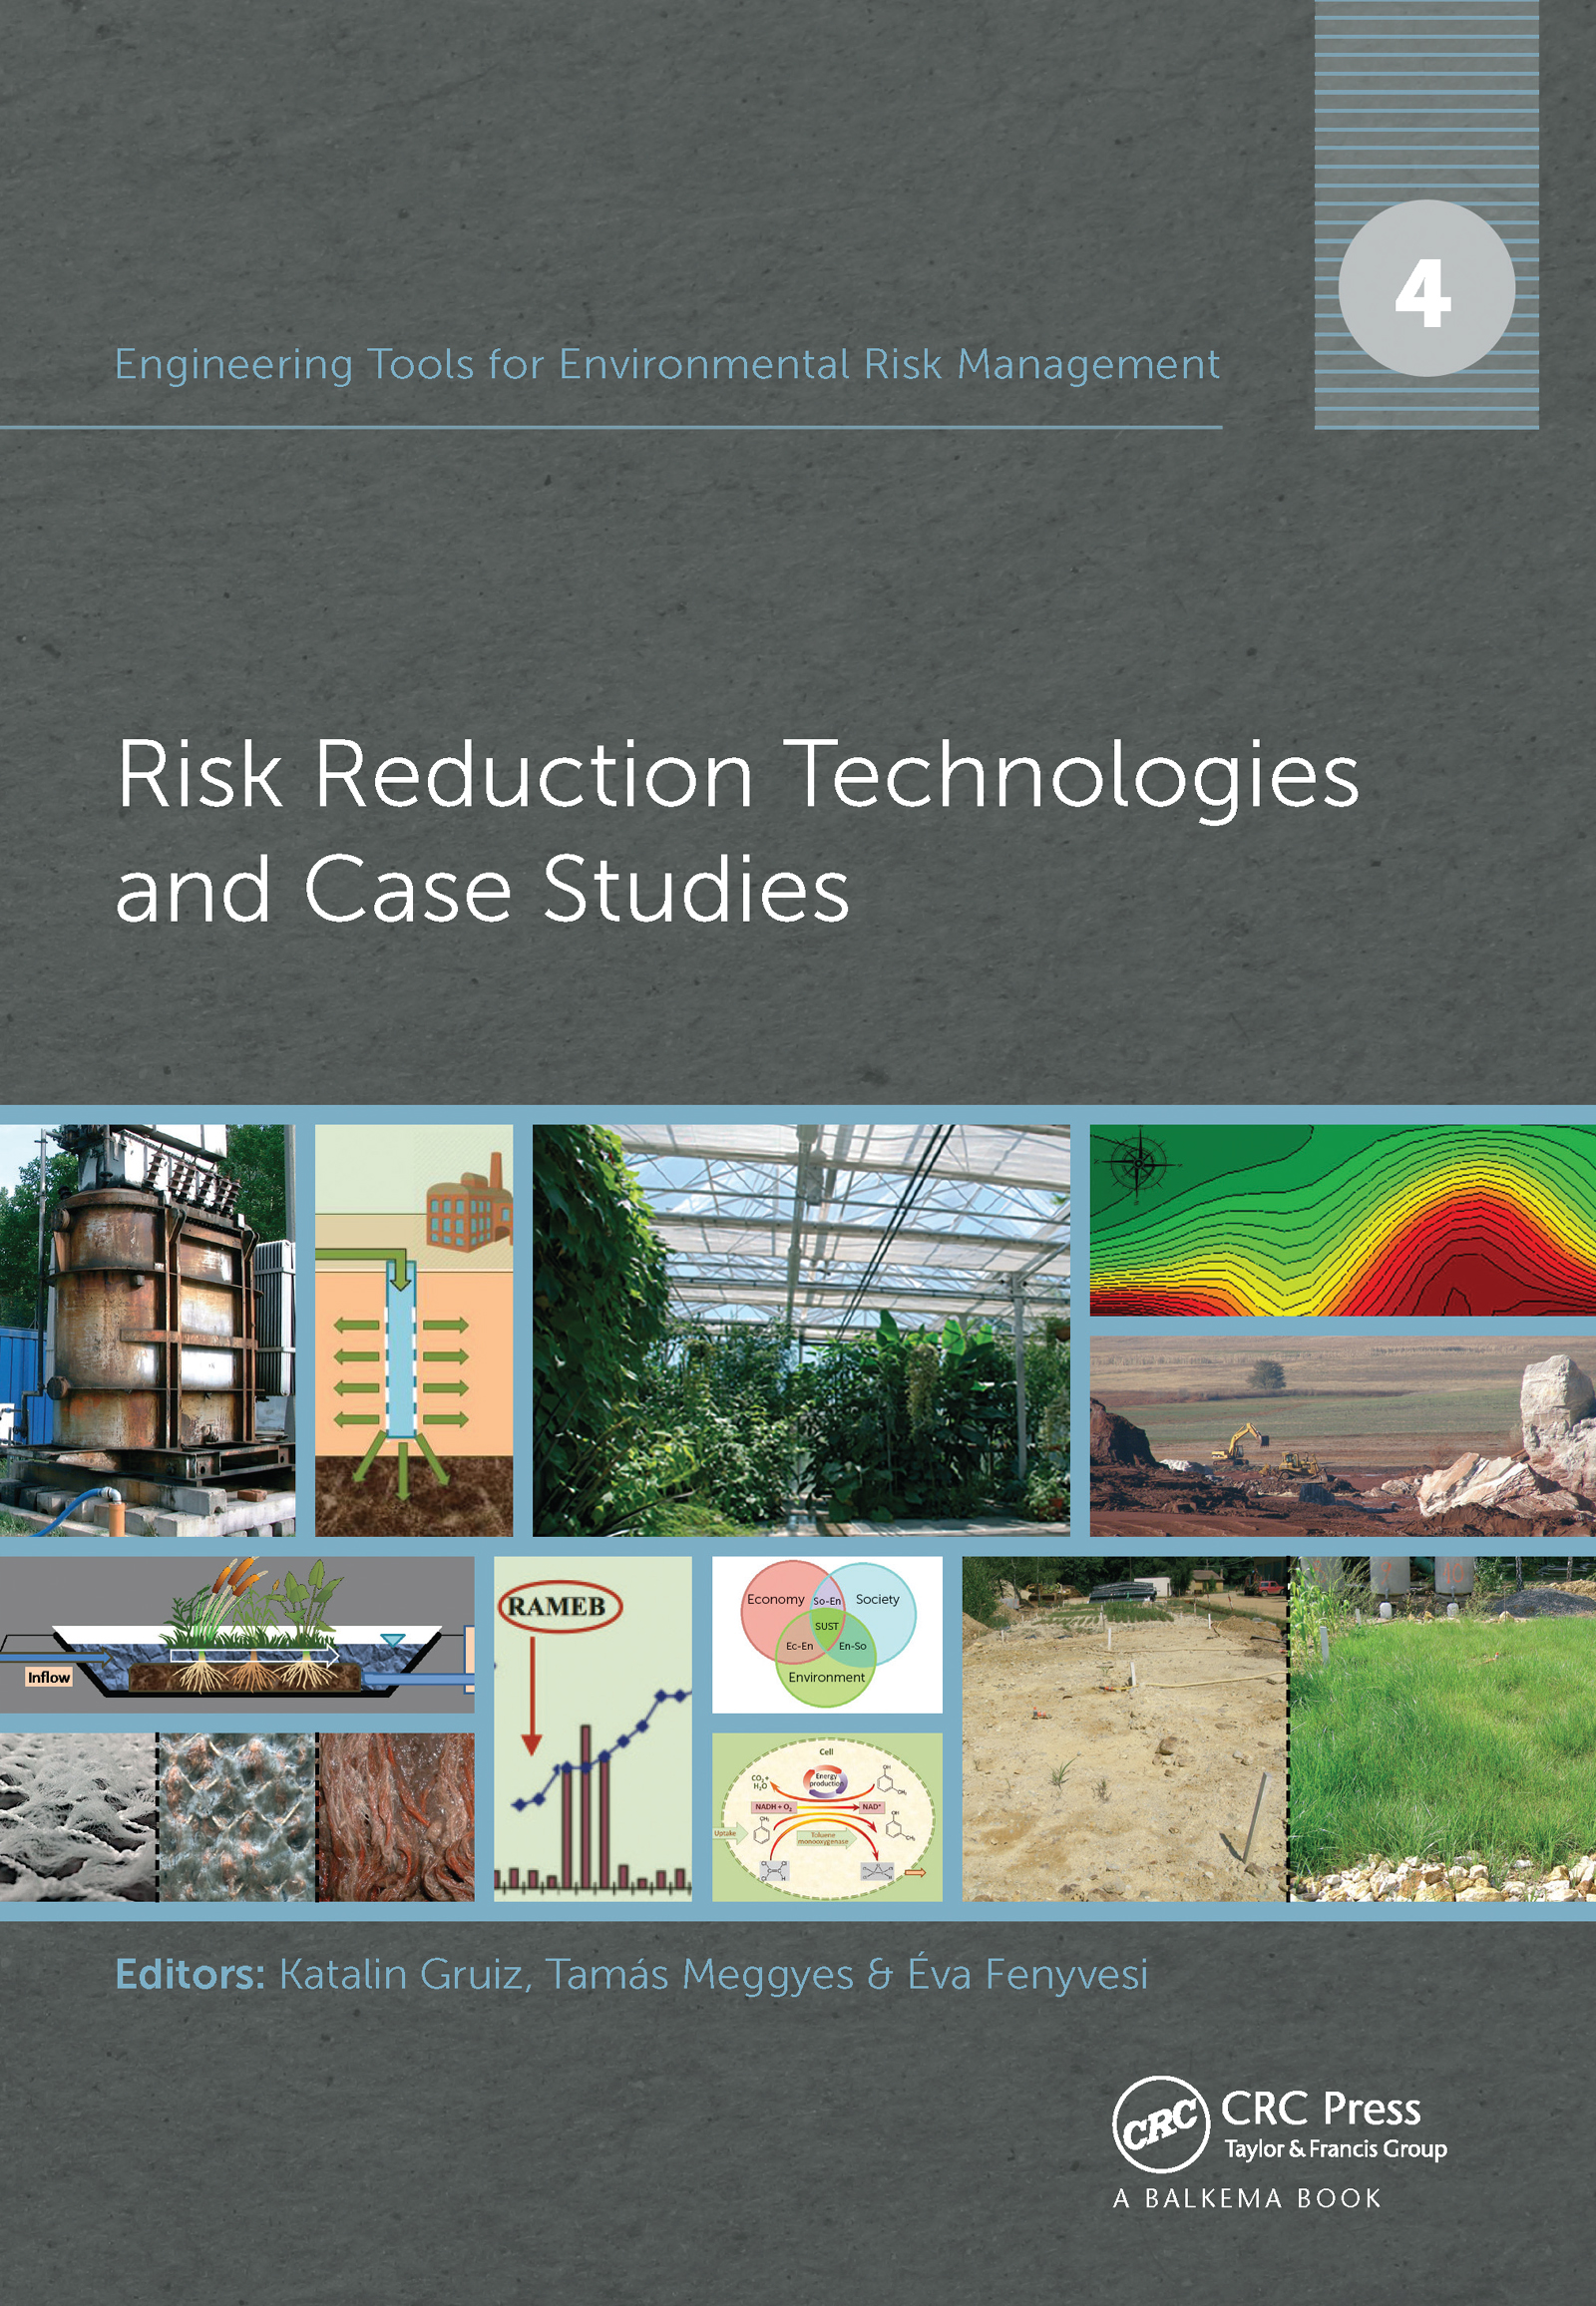 Engineering Tools for Environmental Risk Management